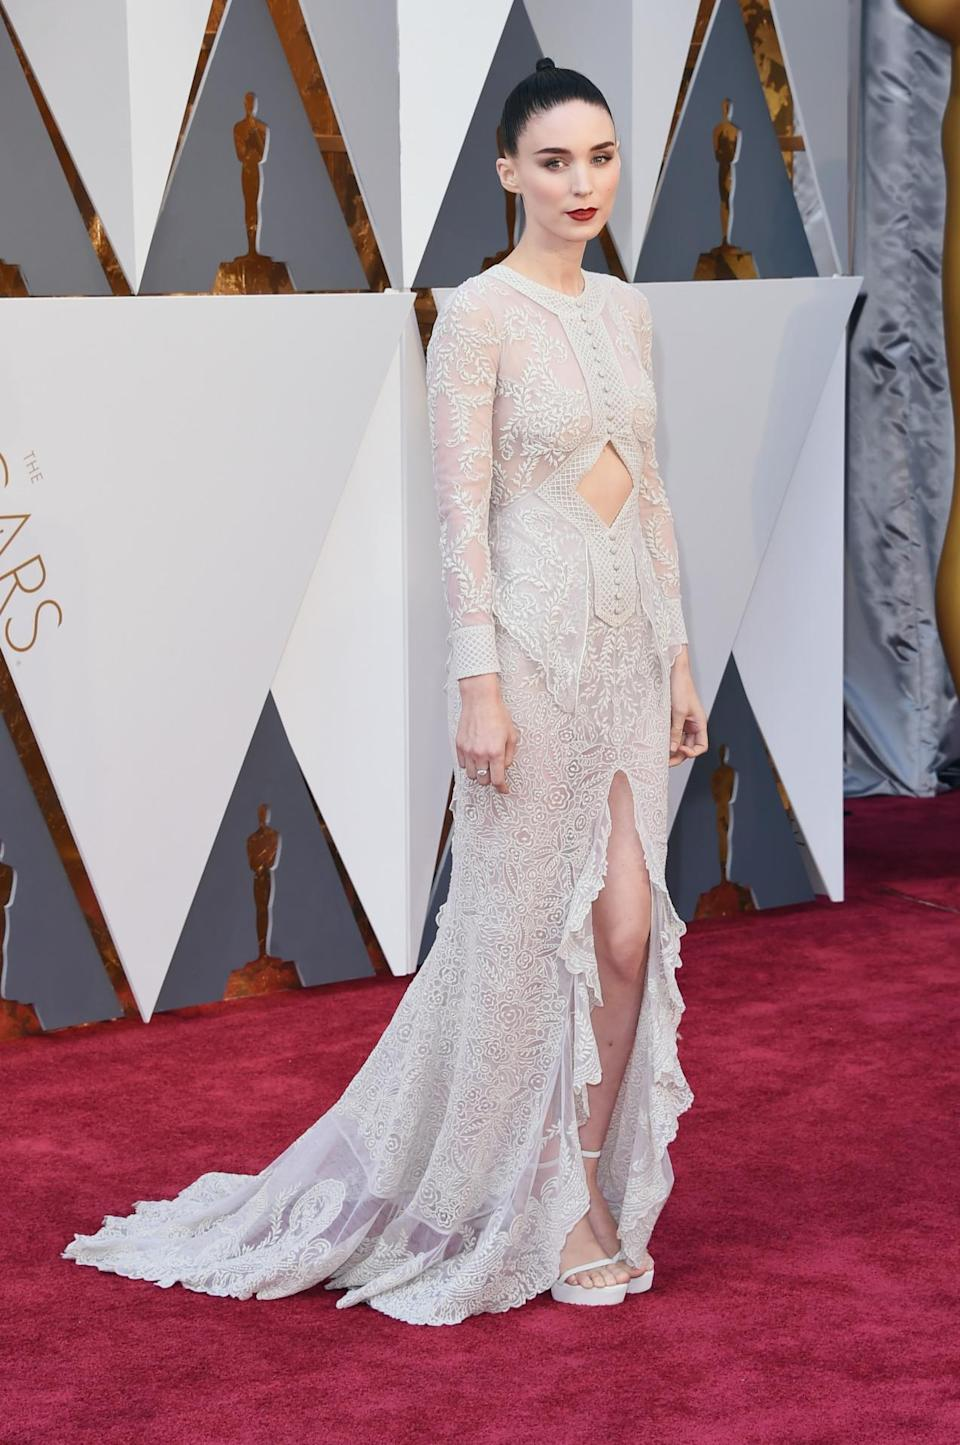 <p>Mara, 30, has stayed relatively quiet since her star turn in 2011's <i>The Girl with the Dragon Tattoo</i>, but her role in 2015's <i>Carol</i> brought her back to the red carpet and, of course, into the fashion industry's adoring gaze. It takes <i>cojones </i>to bare your midriff on Hollywood's biggest night, and Mara undoubtedly has them. Let's hope her next red carpet hiatus doesn't last a full four years. <i>(Photo: Getty)</i></p>